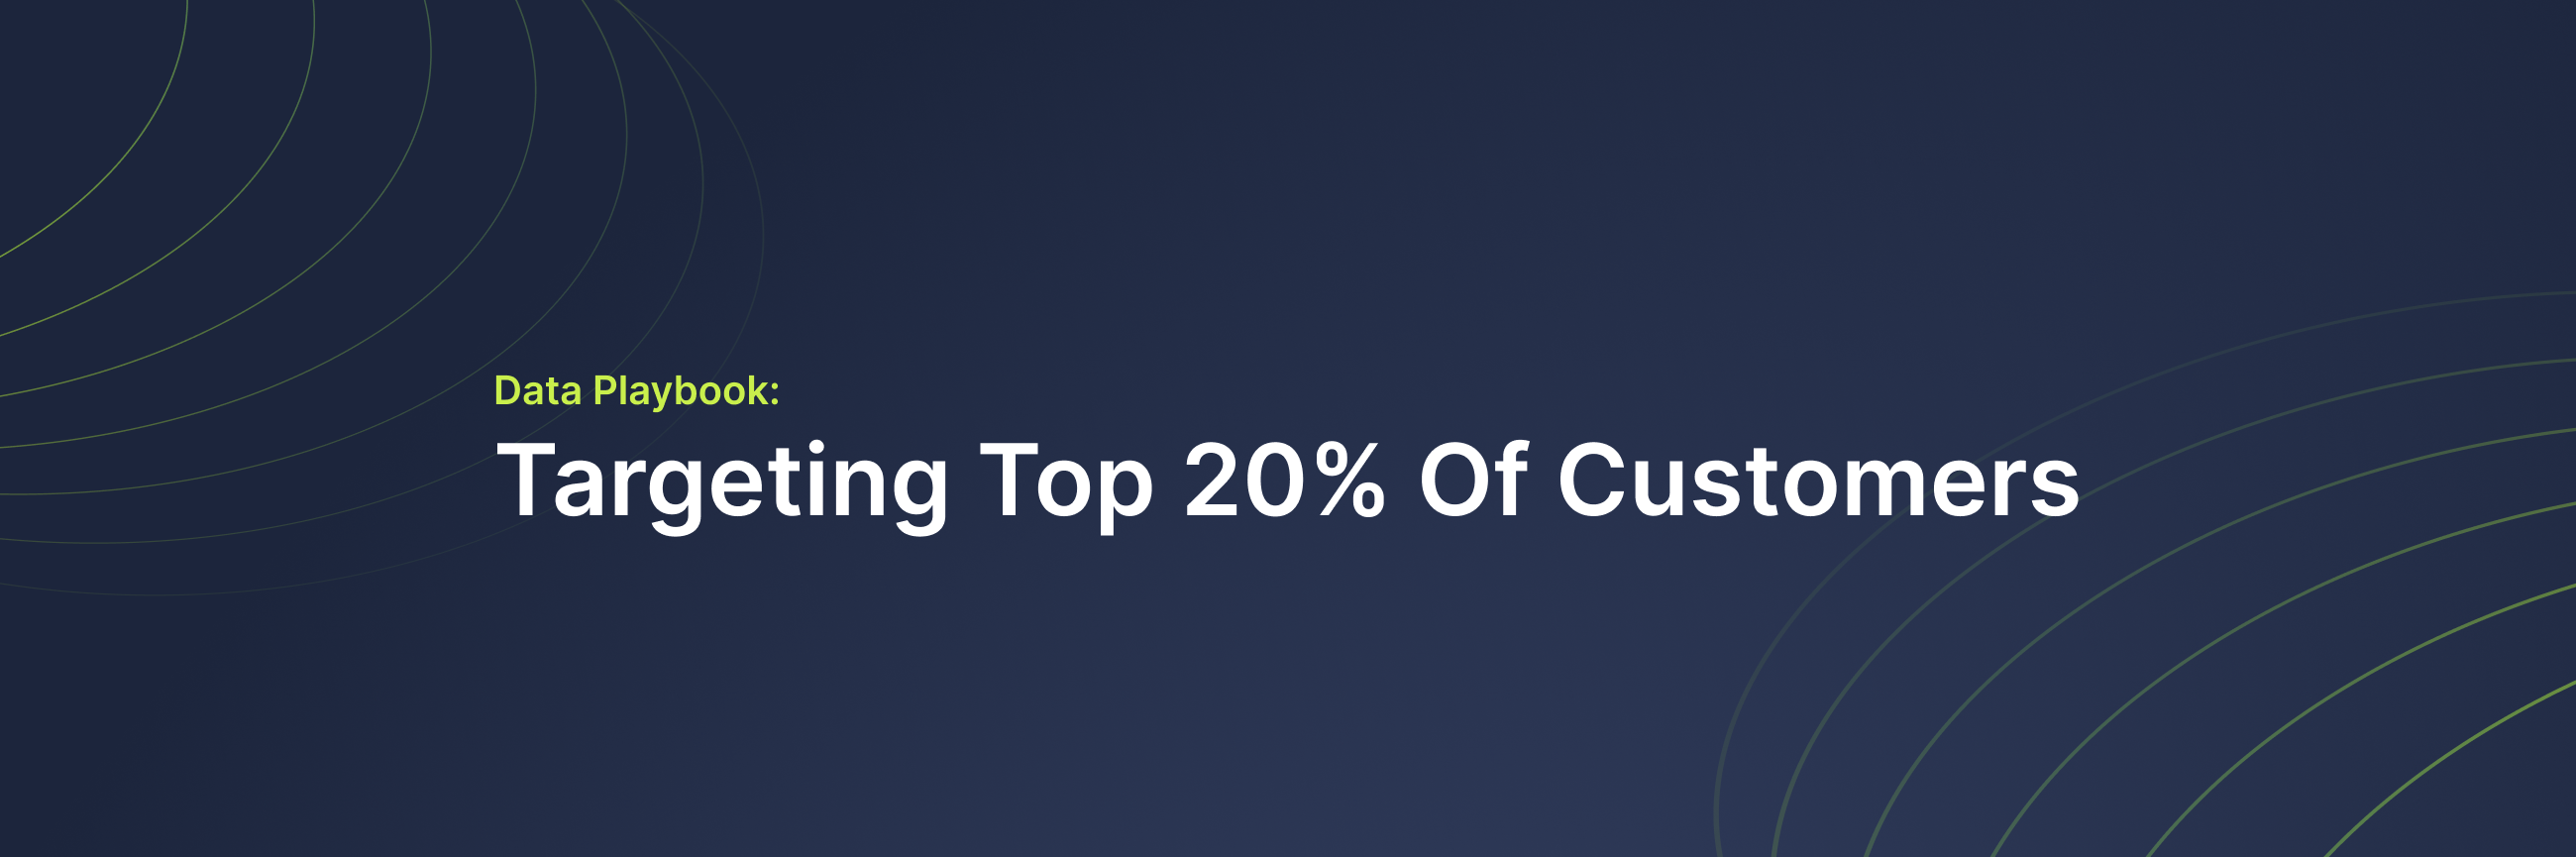 Identify who are the top-performing customers based on RFM scores and stream their profile data into your Marketing channels to incentivize your best customers to purchase more frequently.